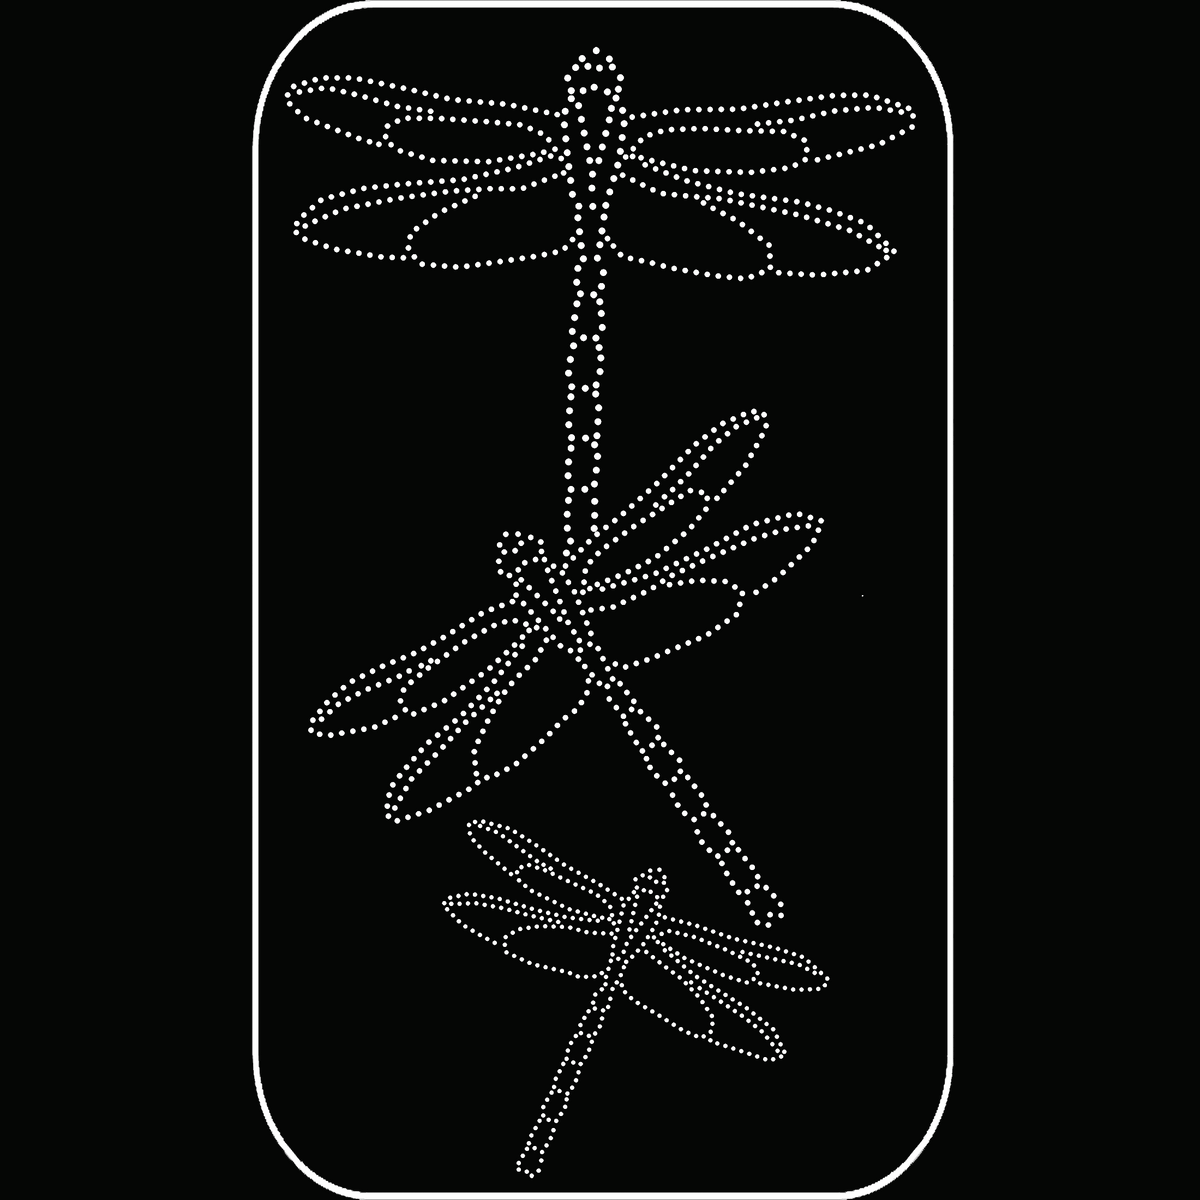 Dragonflies - ichalk-arted